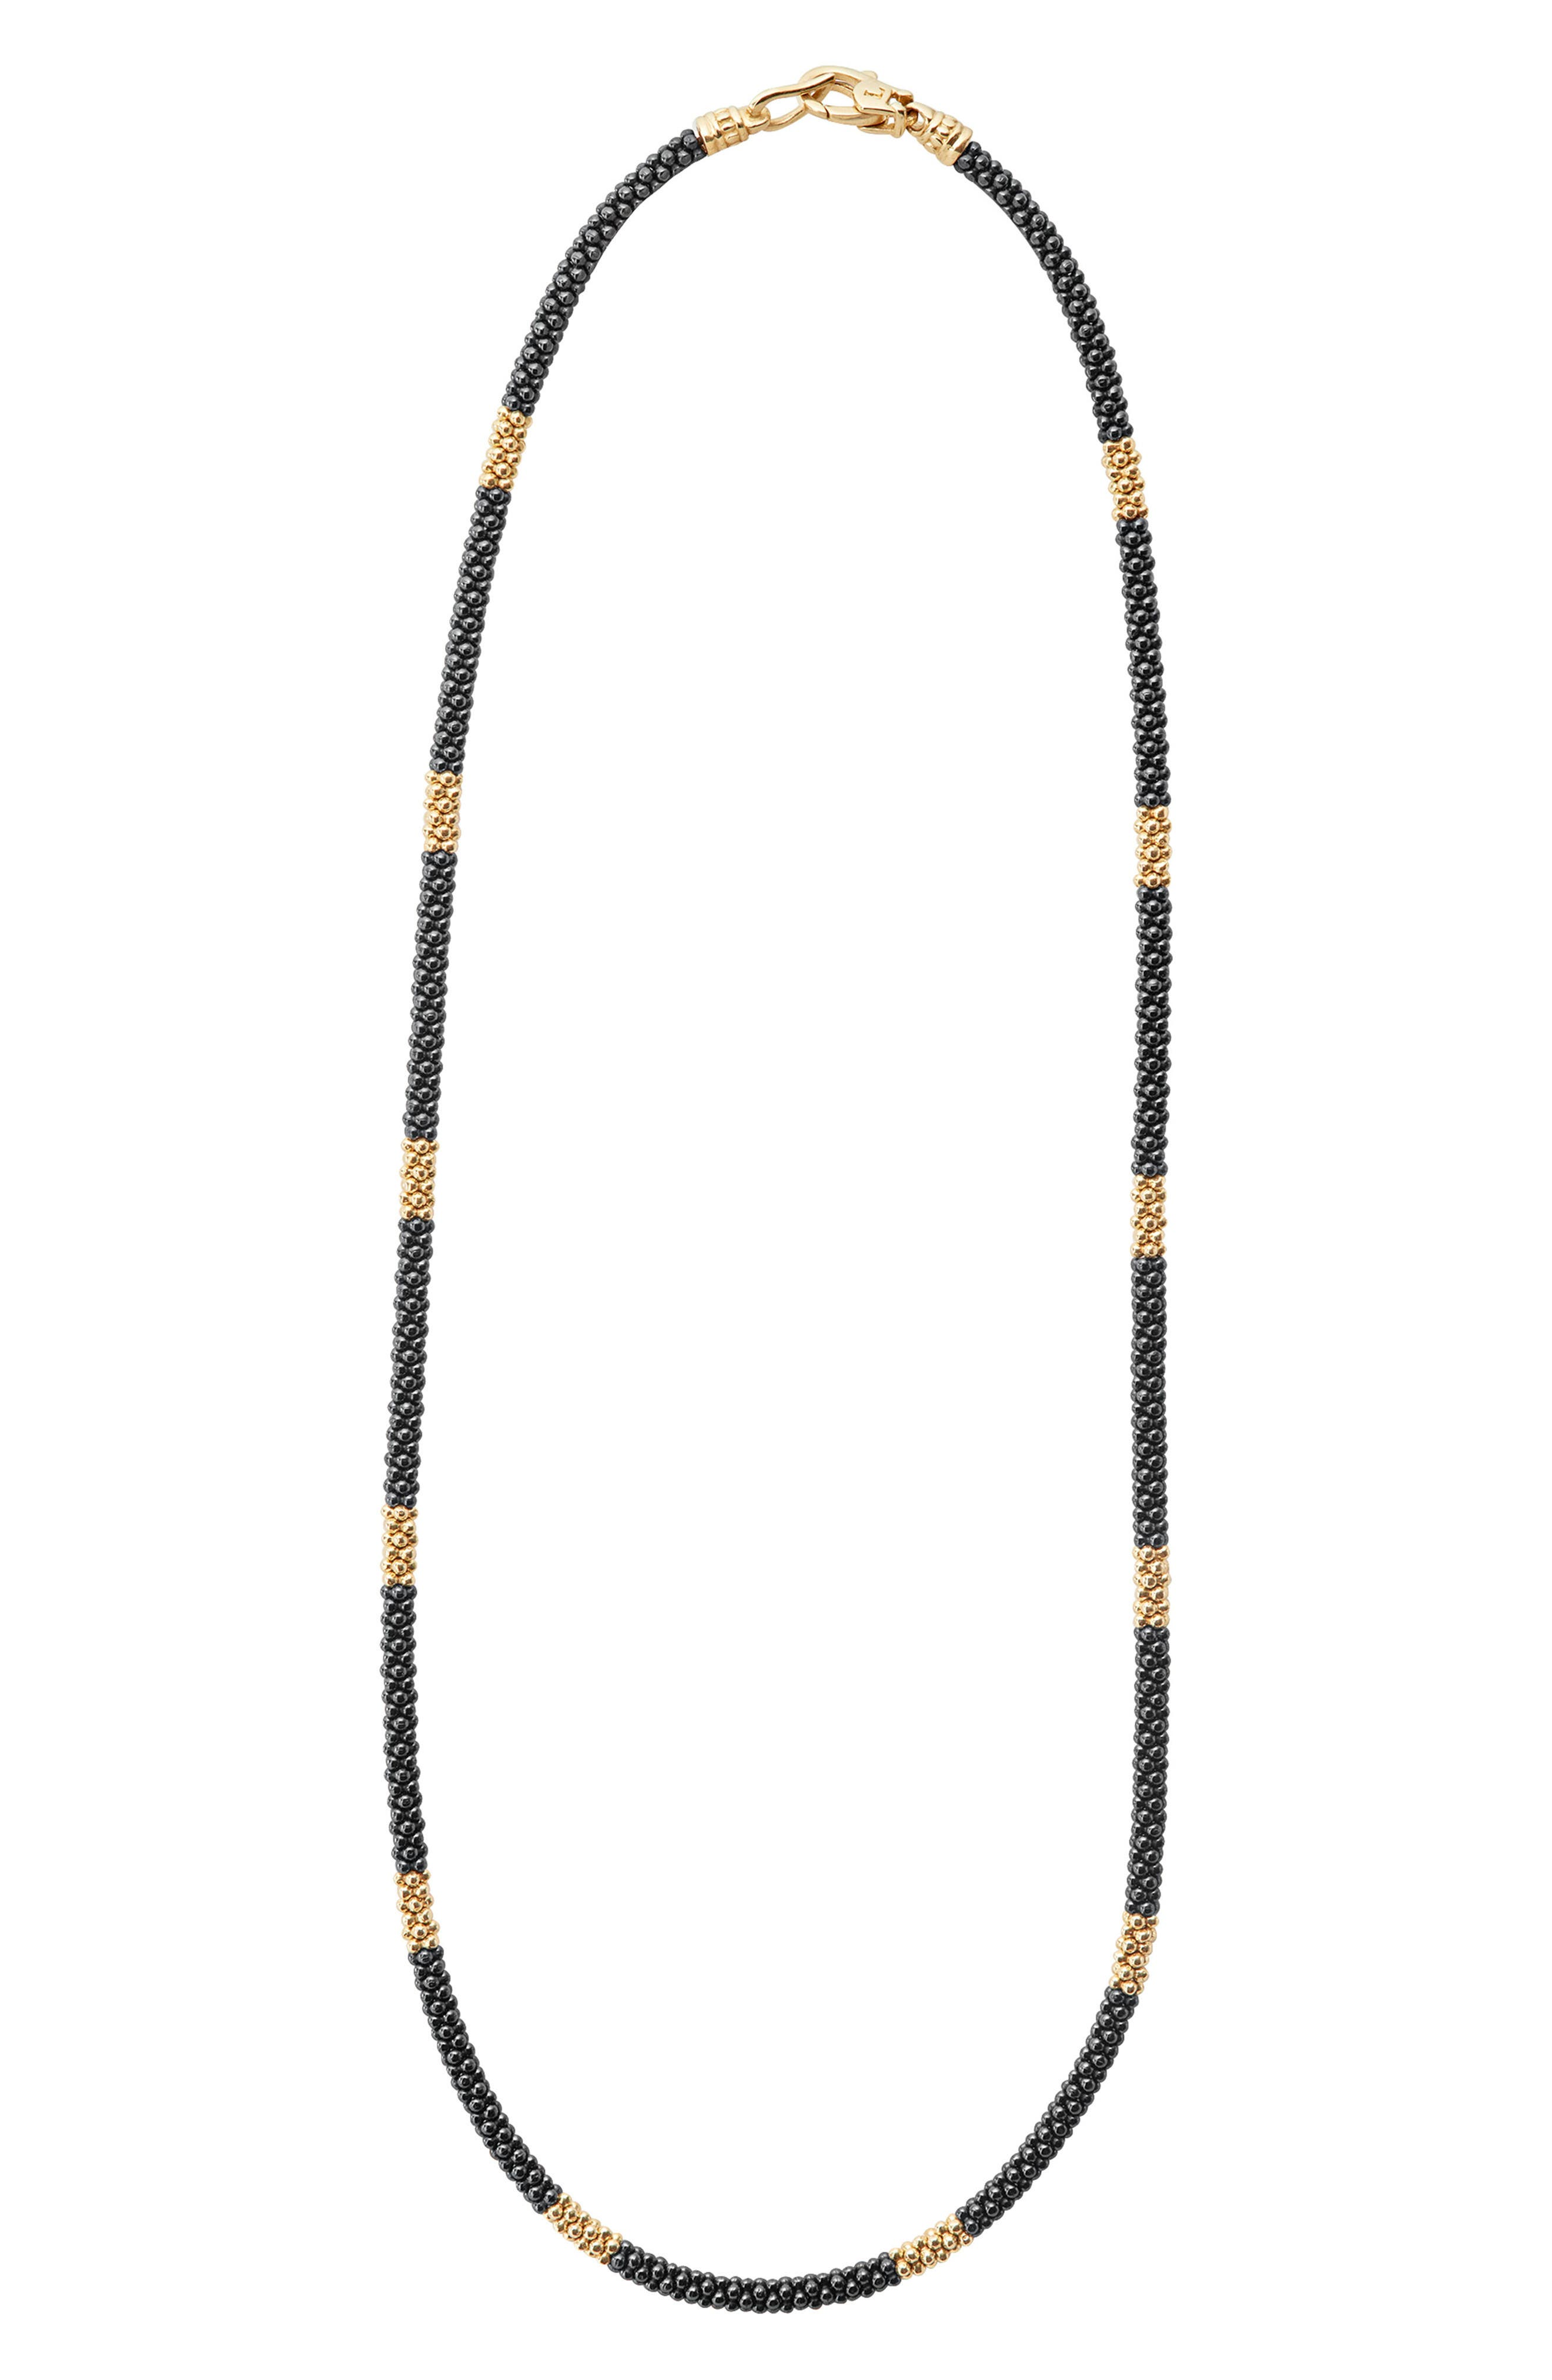 Gold & Black Caviar Rope Necklace,                         Main,                         color, GOLD